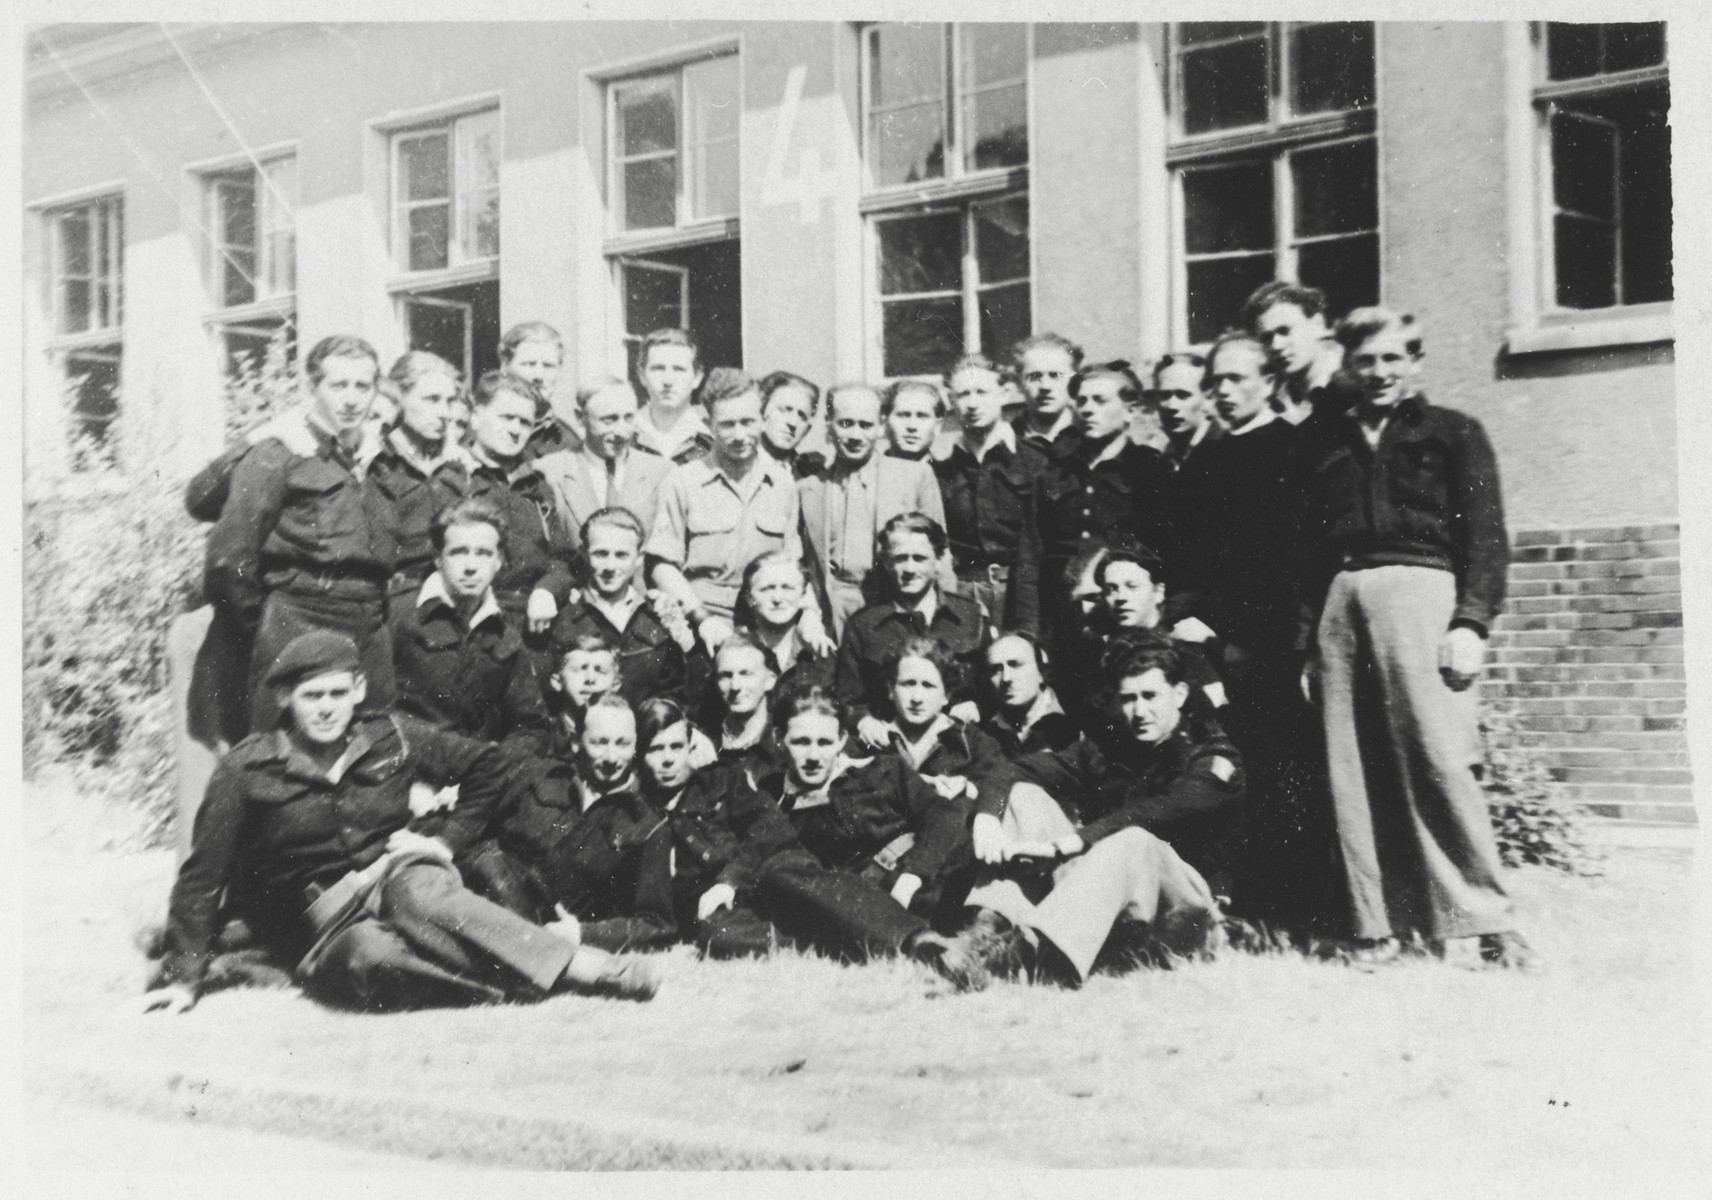 Group portrait of a Jewish police force in the Bergen-Belsen displaced persons camp.  Meyer Strossberg is pictured in the center of the photo.